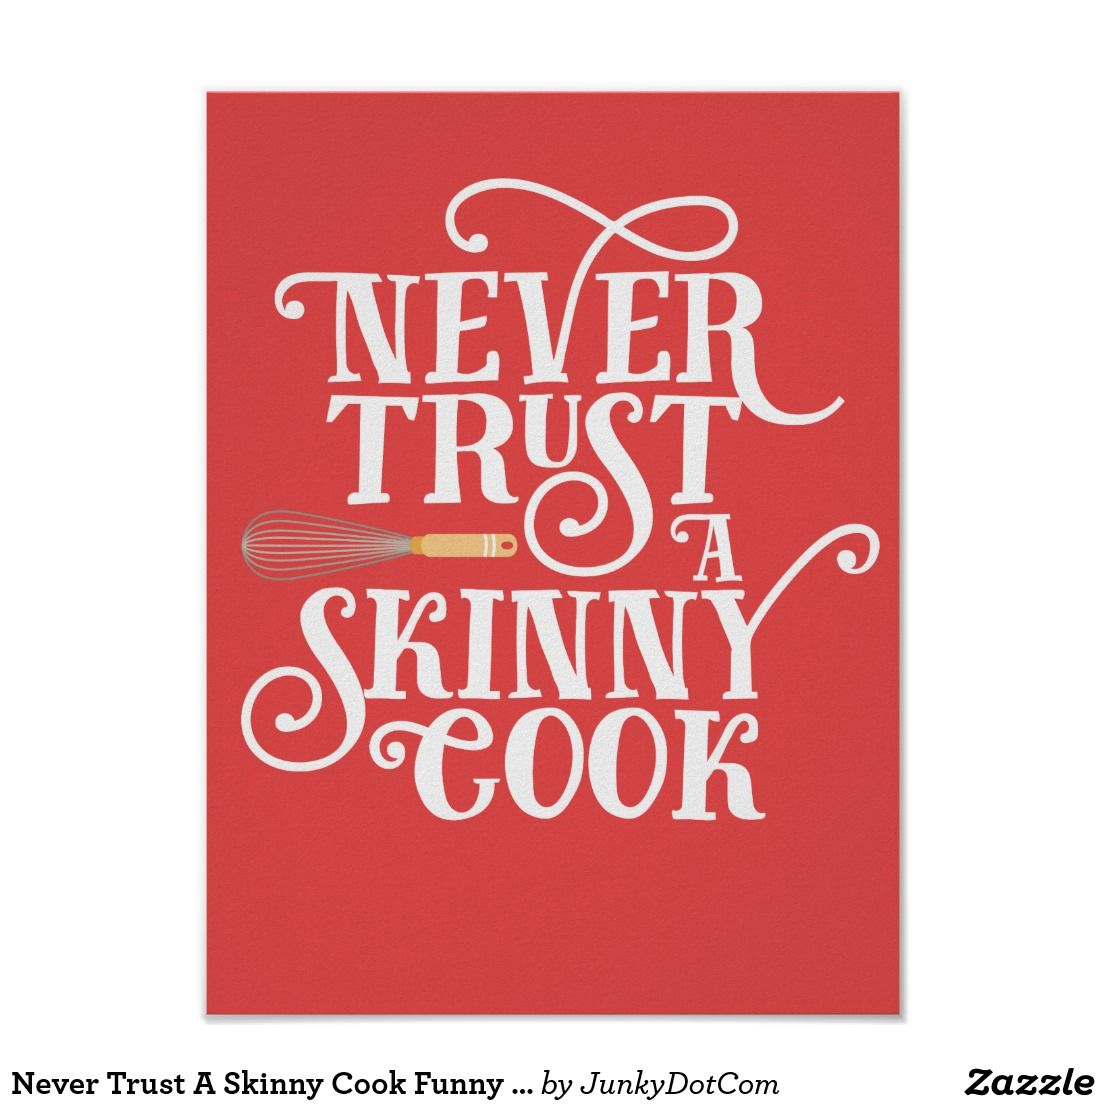 Never Trust A Skinny Cook Funny Quote Poster Quote Posters Funny Quotes Funny Postcards